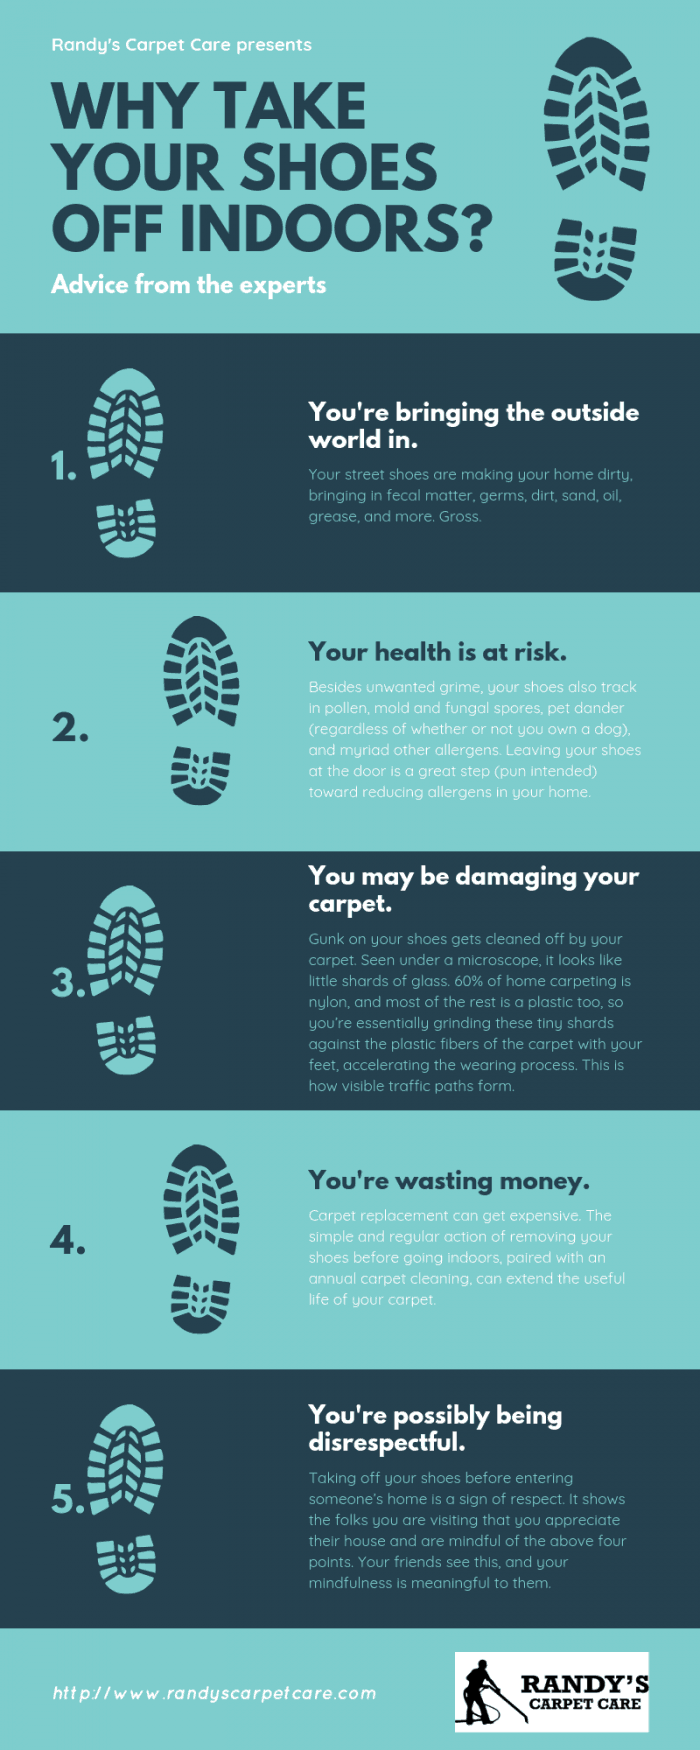 Why Take Your Shoes Off Indoors